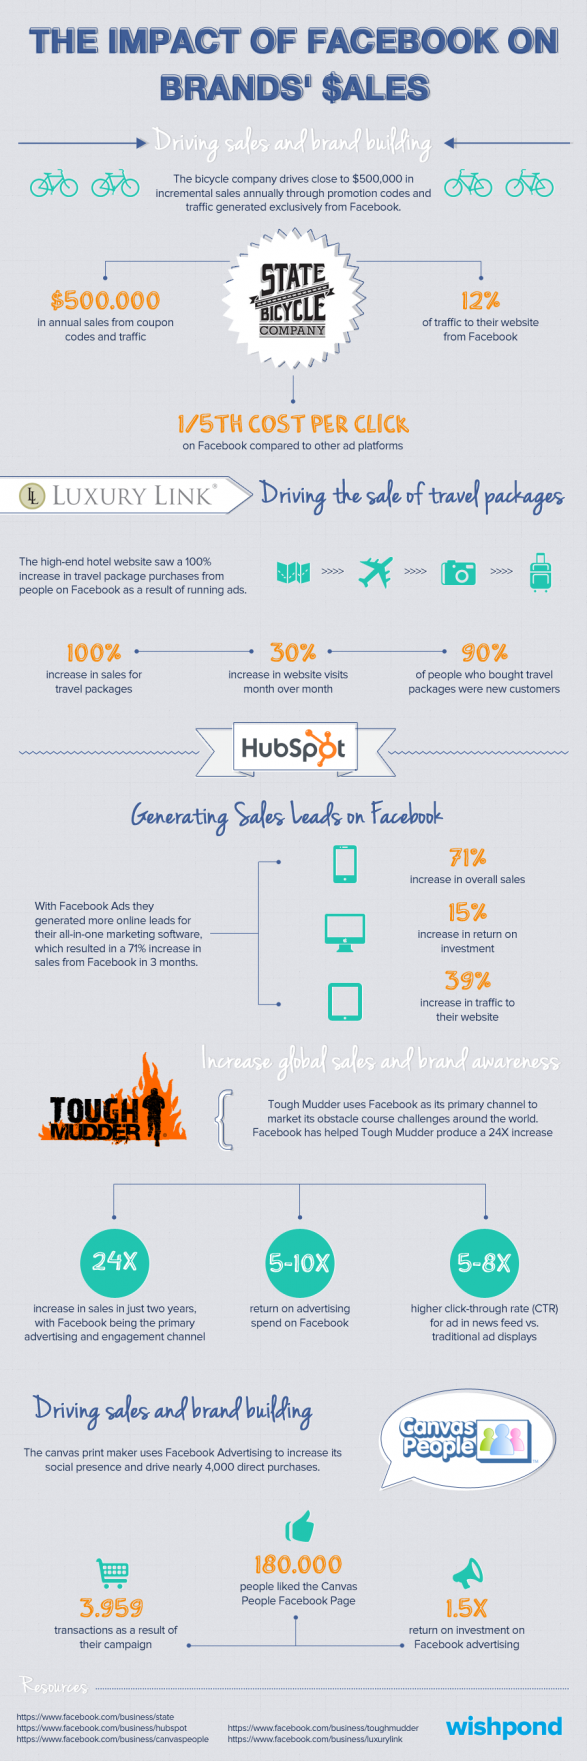 The Impact of Facebook on Brands